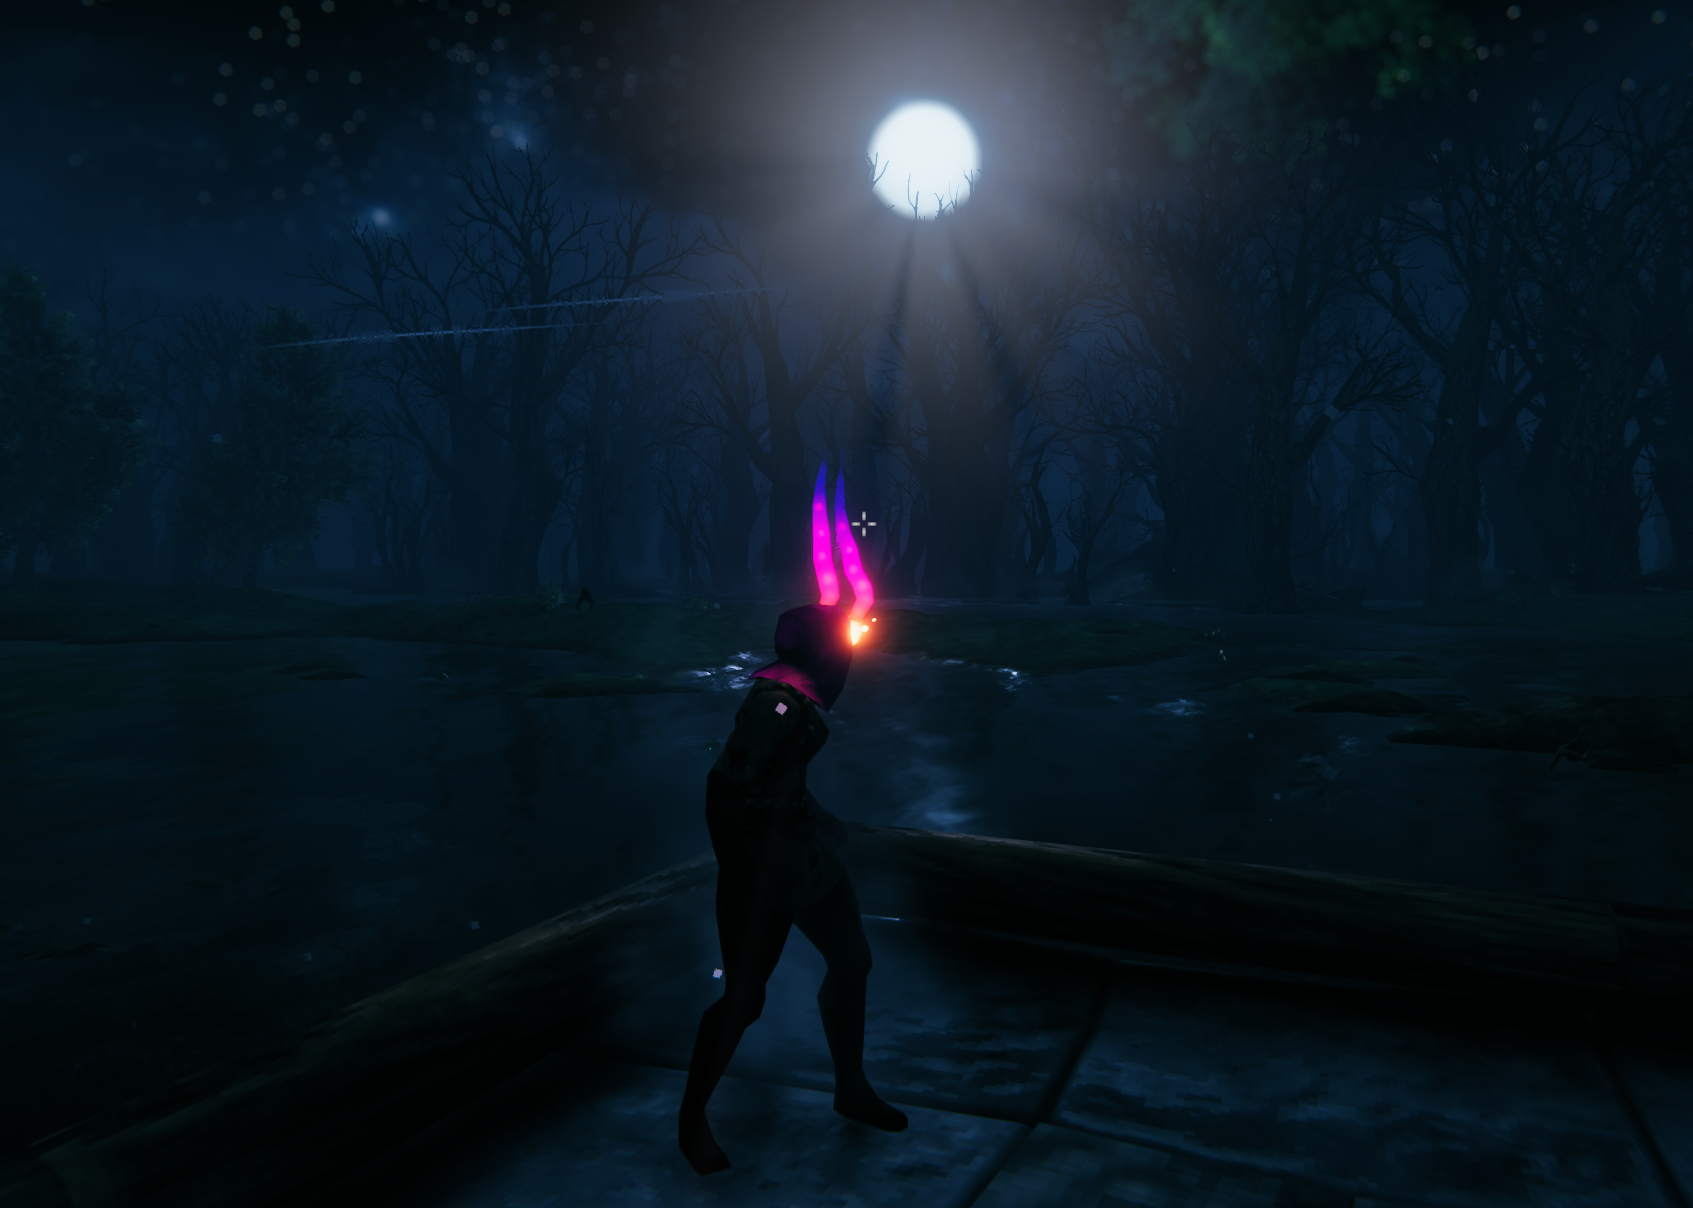 Viking wearing incredibly cool glowing helm, sillhouetted by the moon